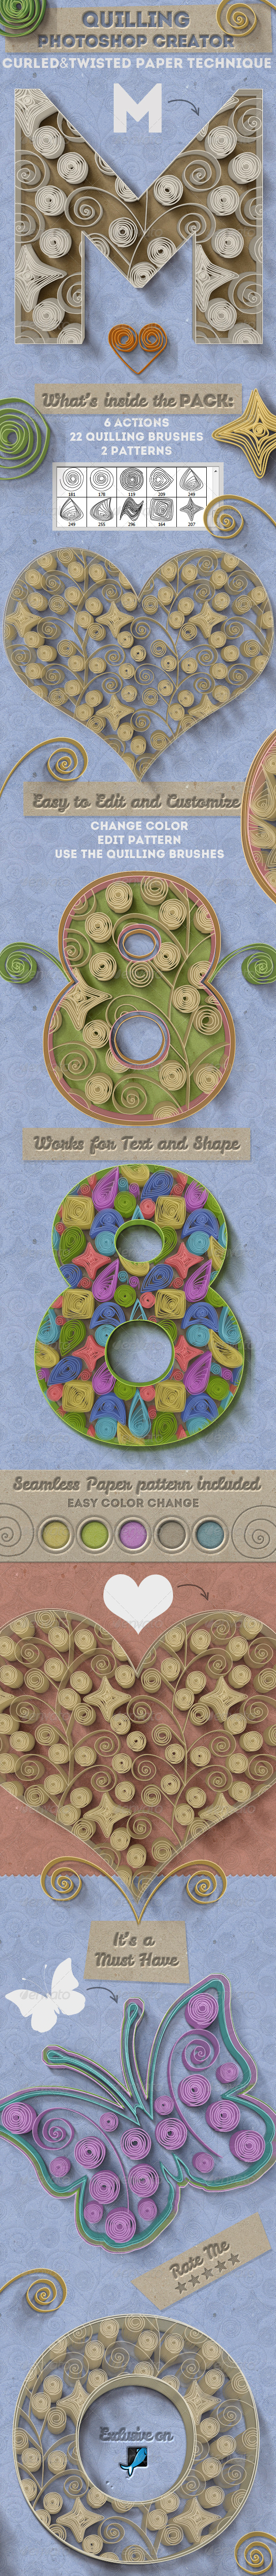 GraphicRiver Quilling Paper Art Photoshop Creator 8741102